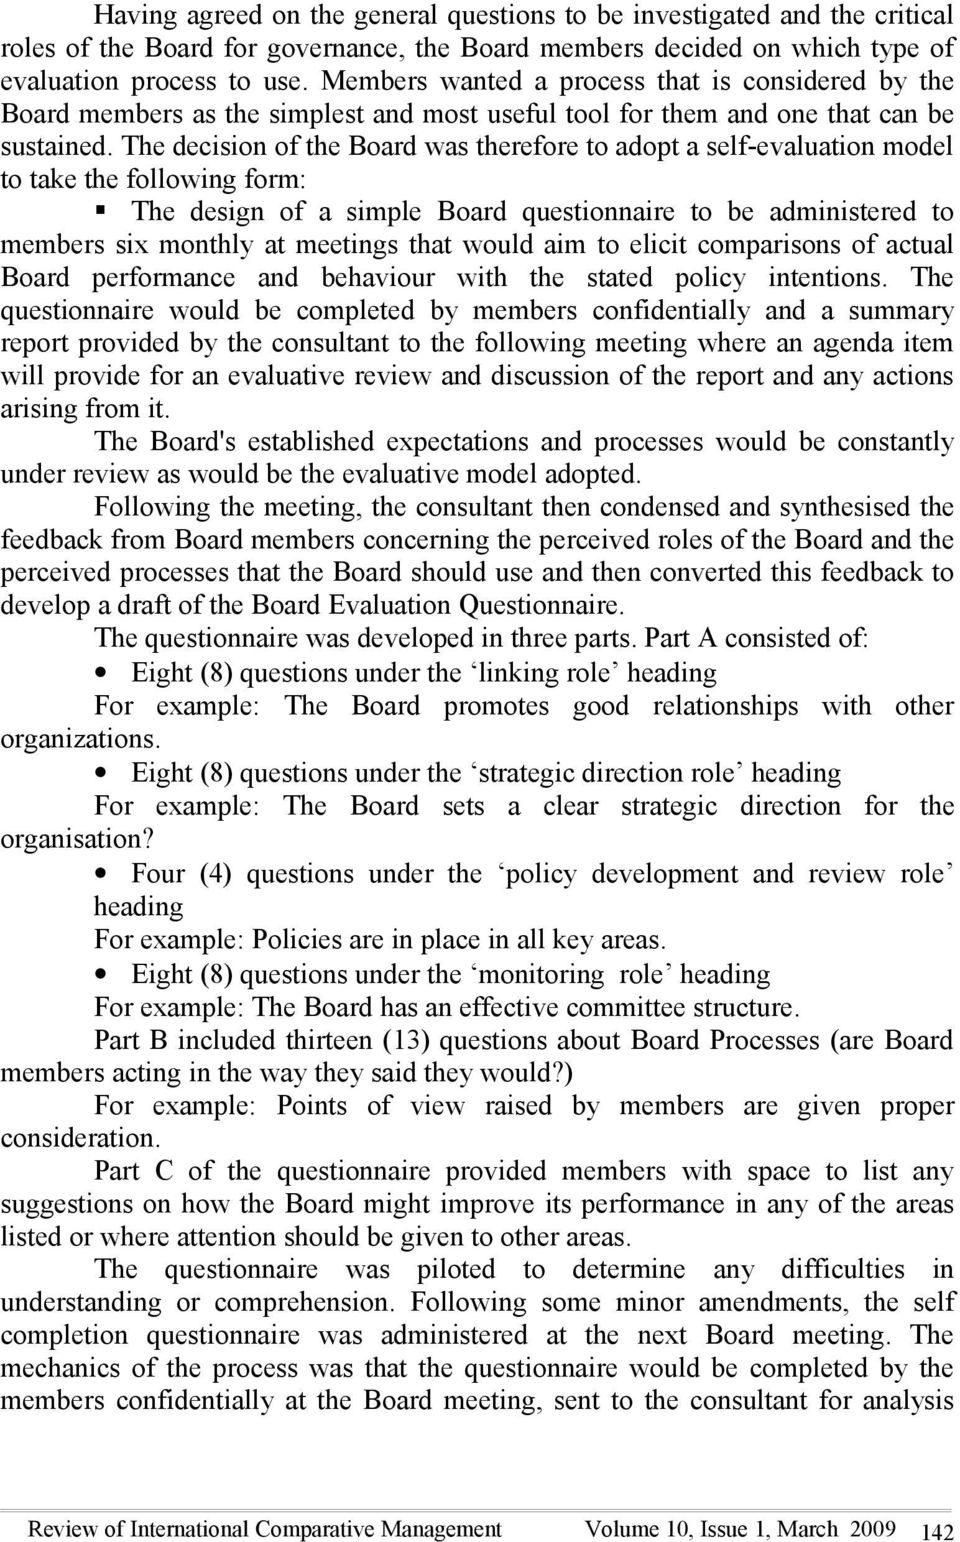 The decision of the Board was therefore to adopt a self-evaluation model to take the following form: The design of a simple Board questionnaire to be administered to members six monthly at meetings